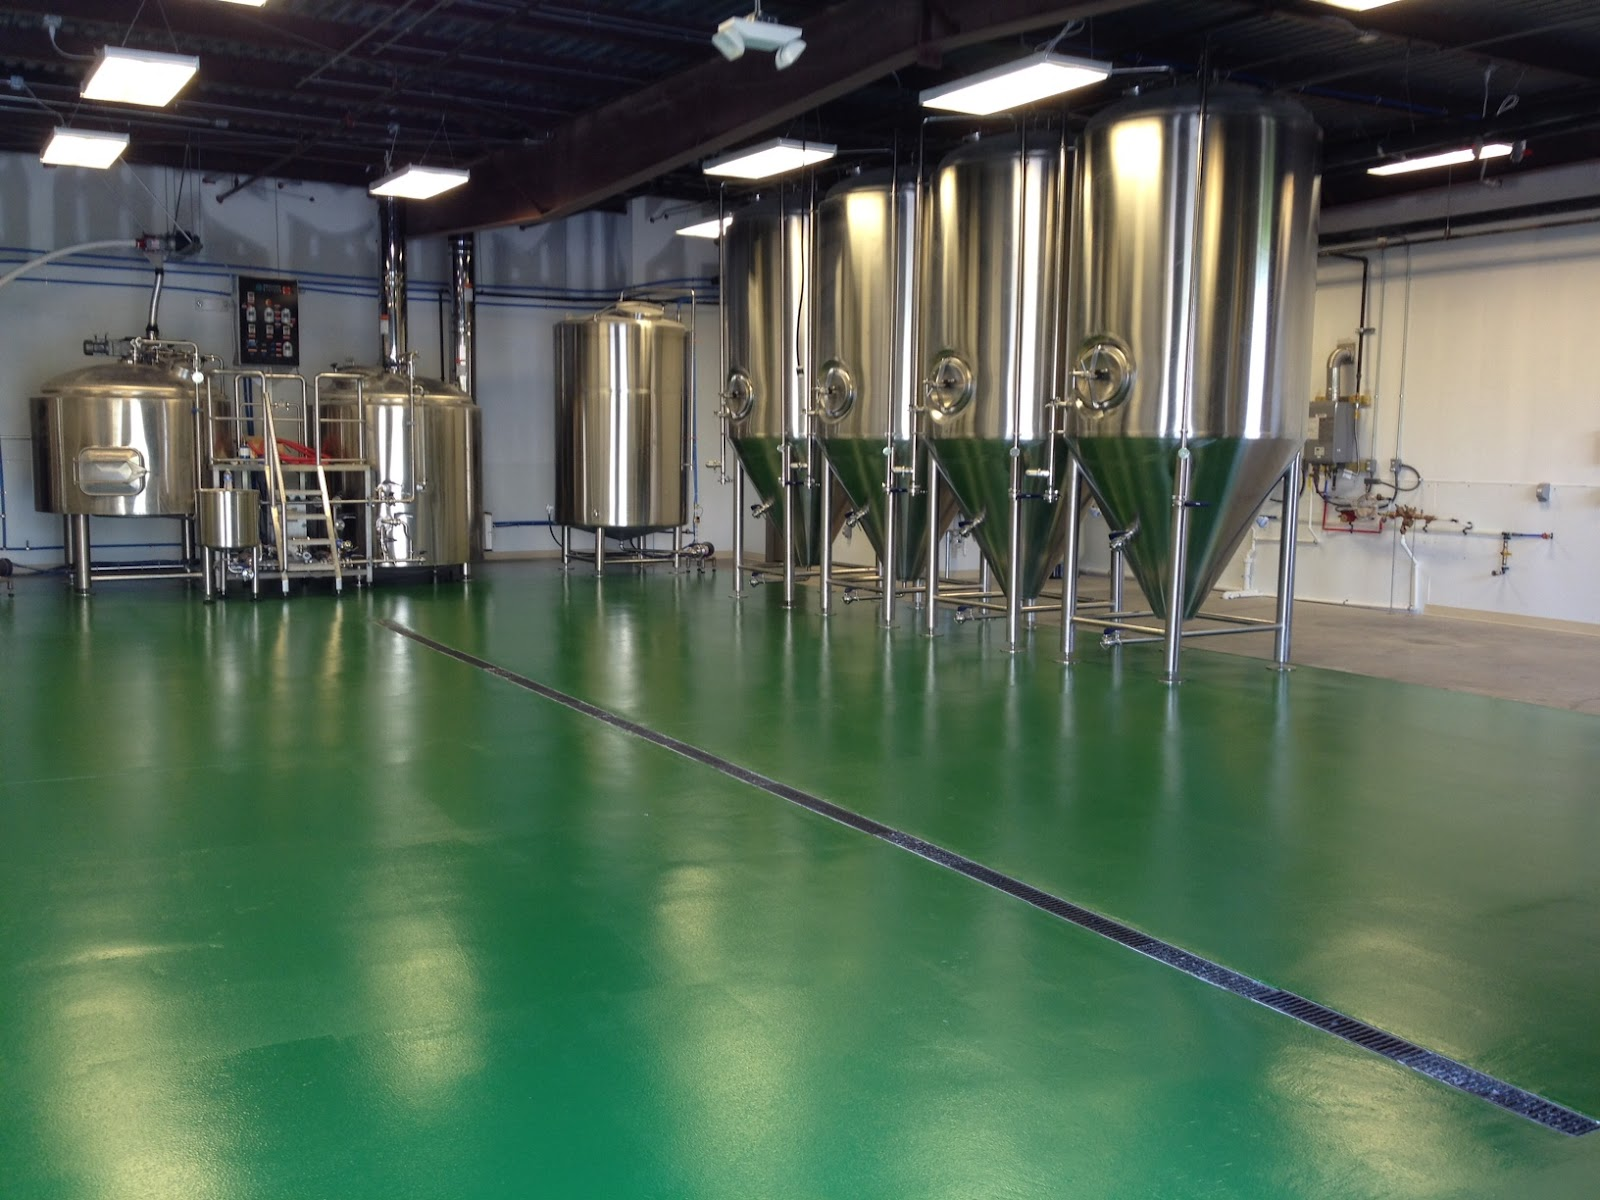 Turtle Anarchy Brewing Company Green Floors